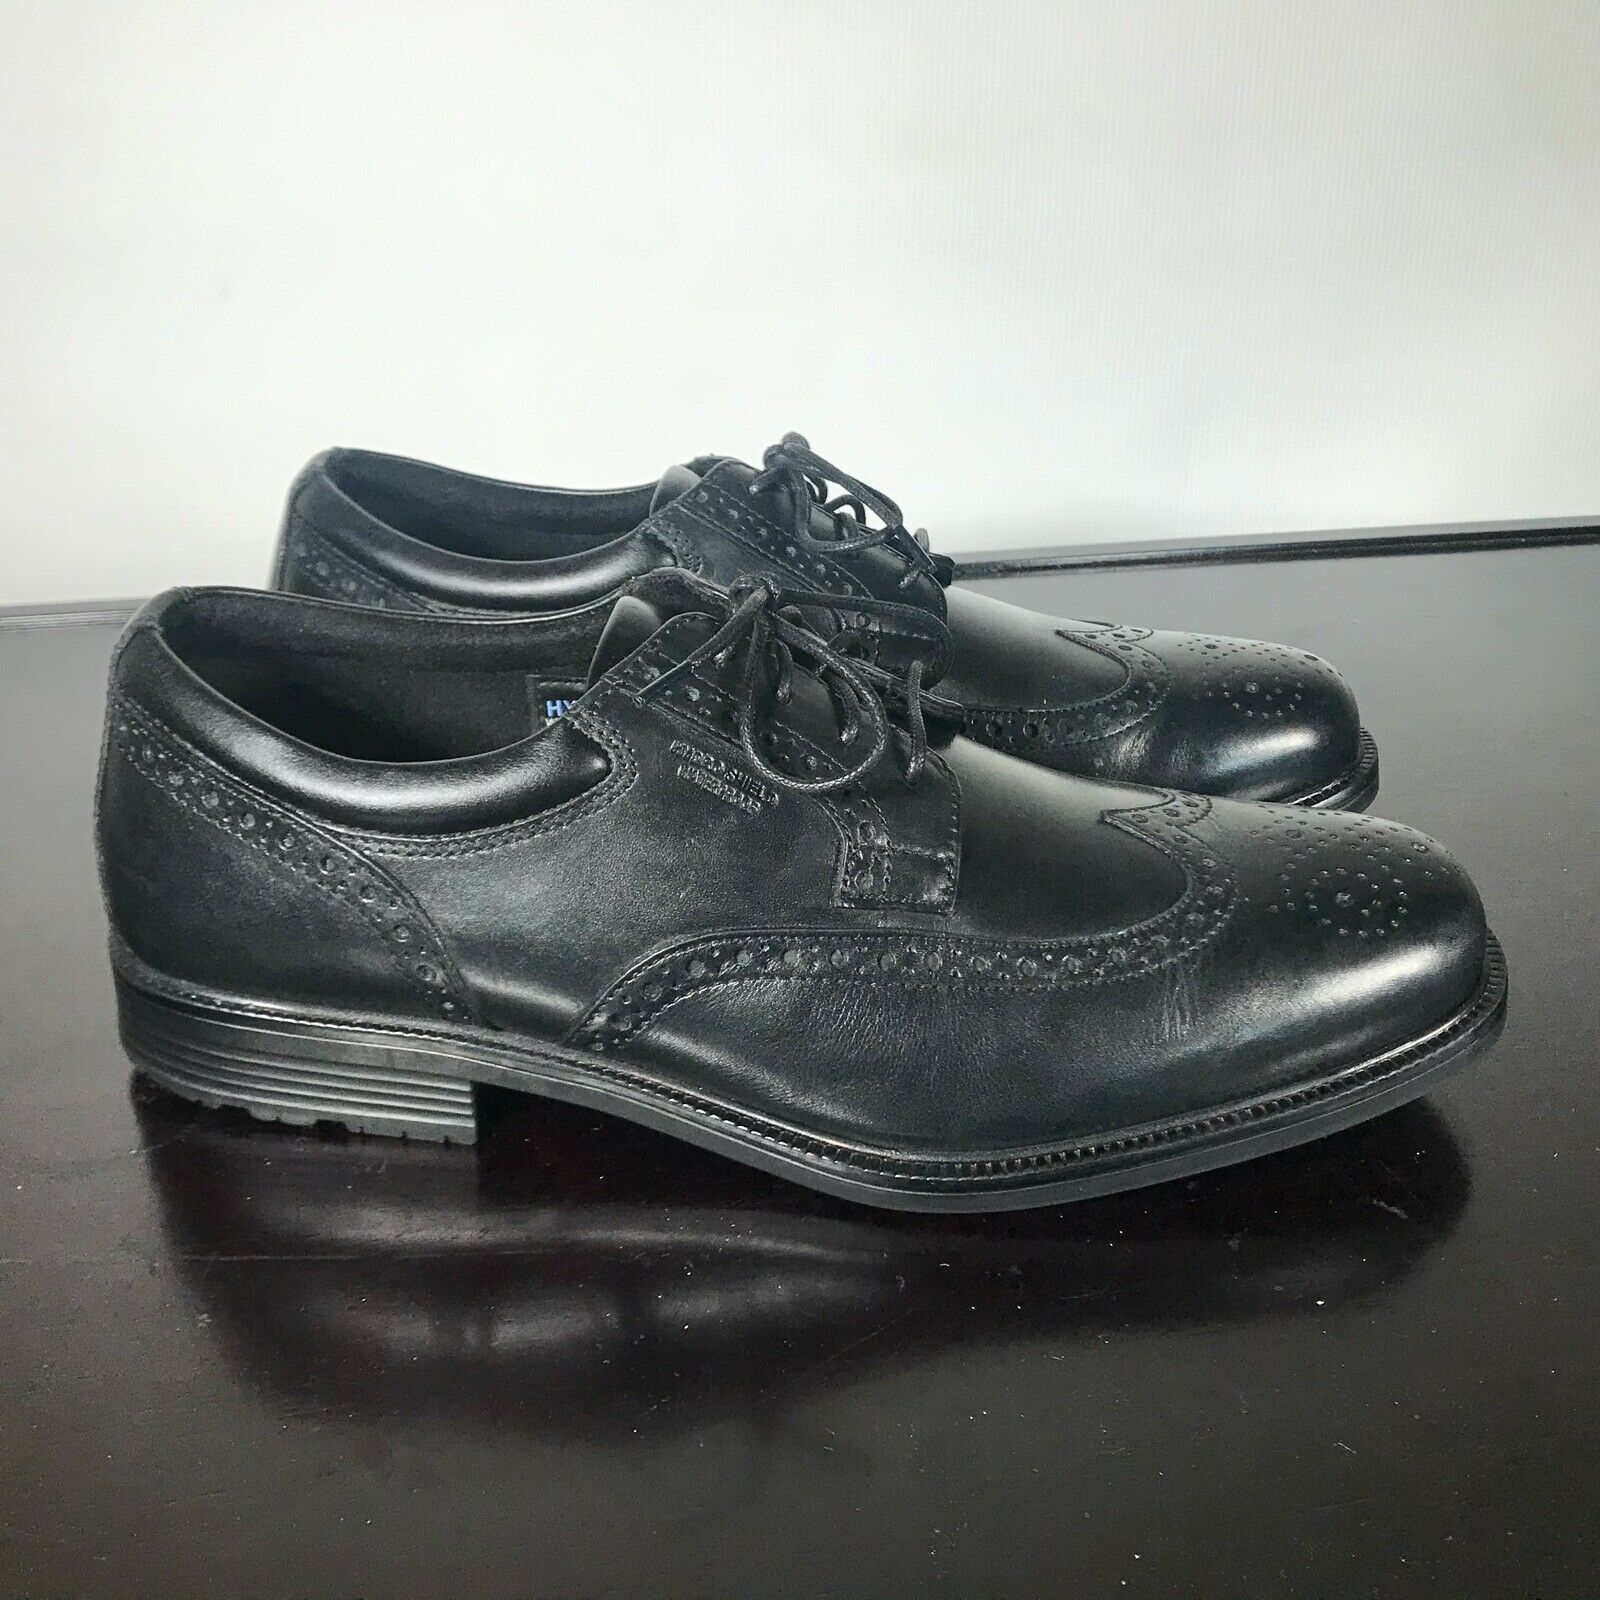 Primary image for RockPort Walkability Men US 11W Wingtip Adiprene Leather Hydro-shield Waterproof